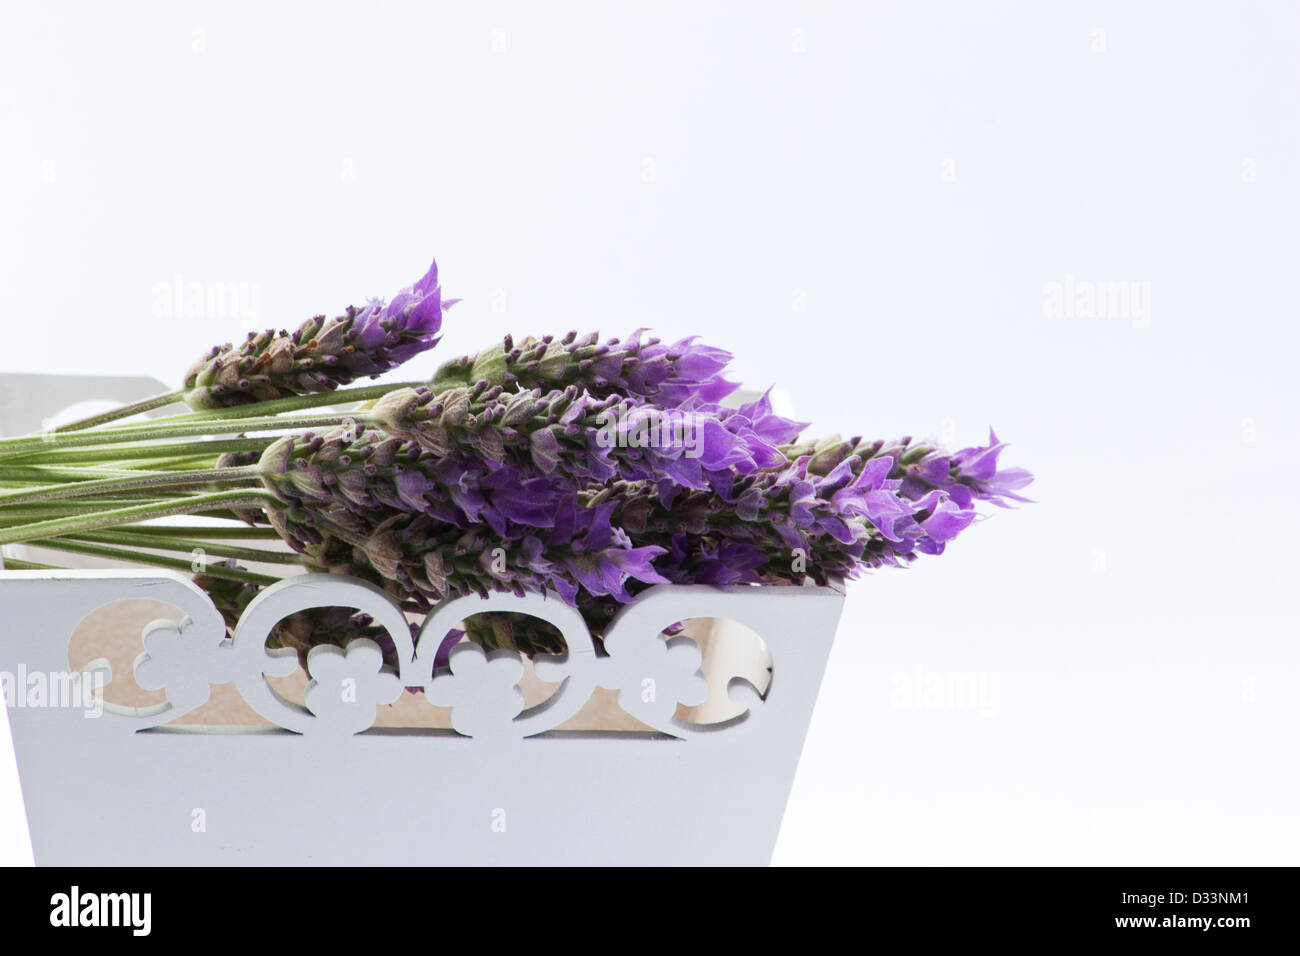 Lavender flowers on a white tray on white background - Stock Image